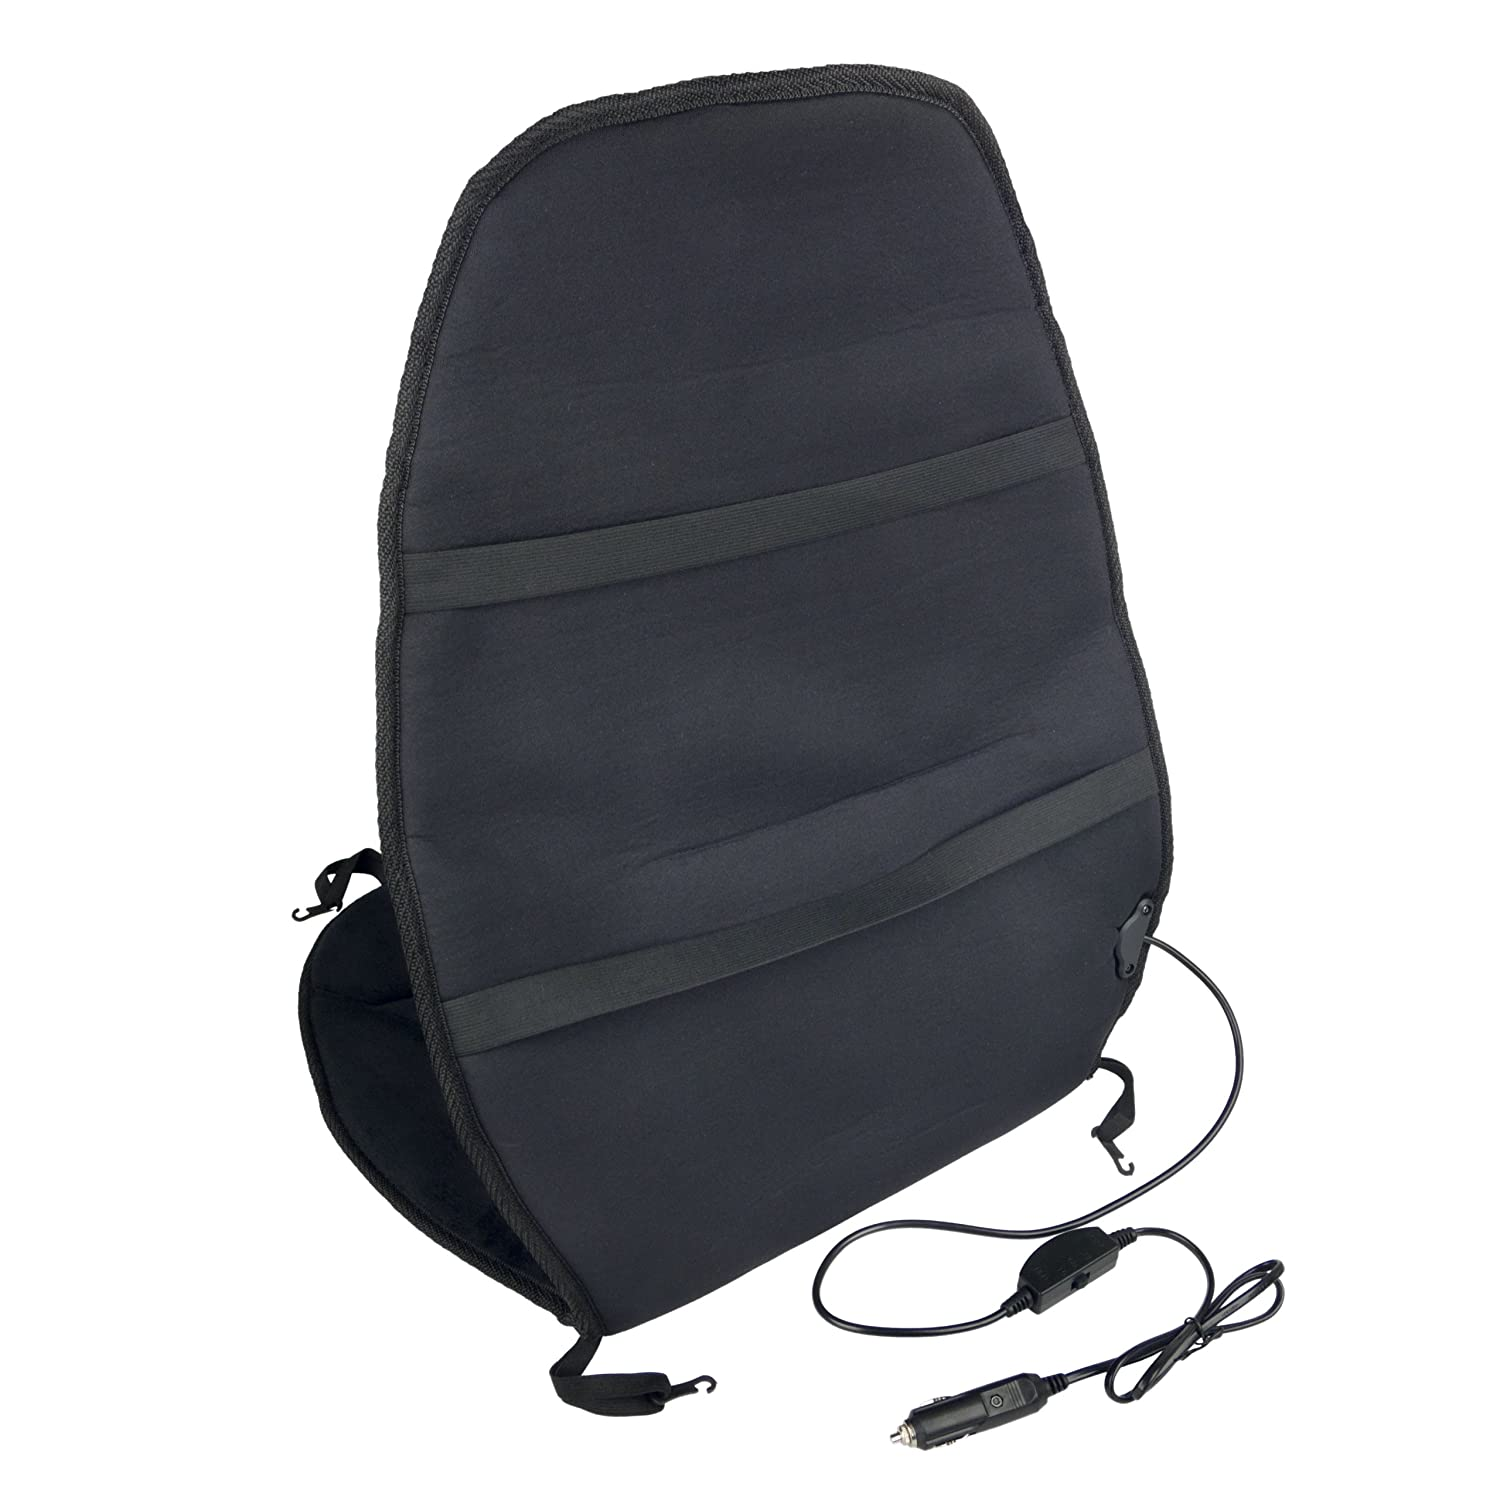 Black --IN9438 Wagan Soft Velour 12V Heated Seat Cushion Ultra Plush with High//Low//Off Temperature Control